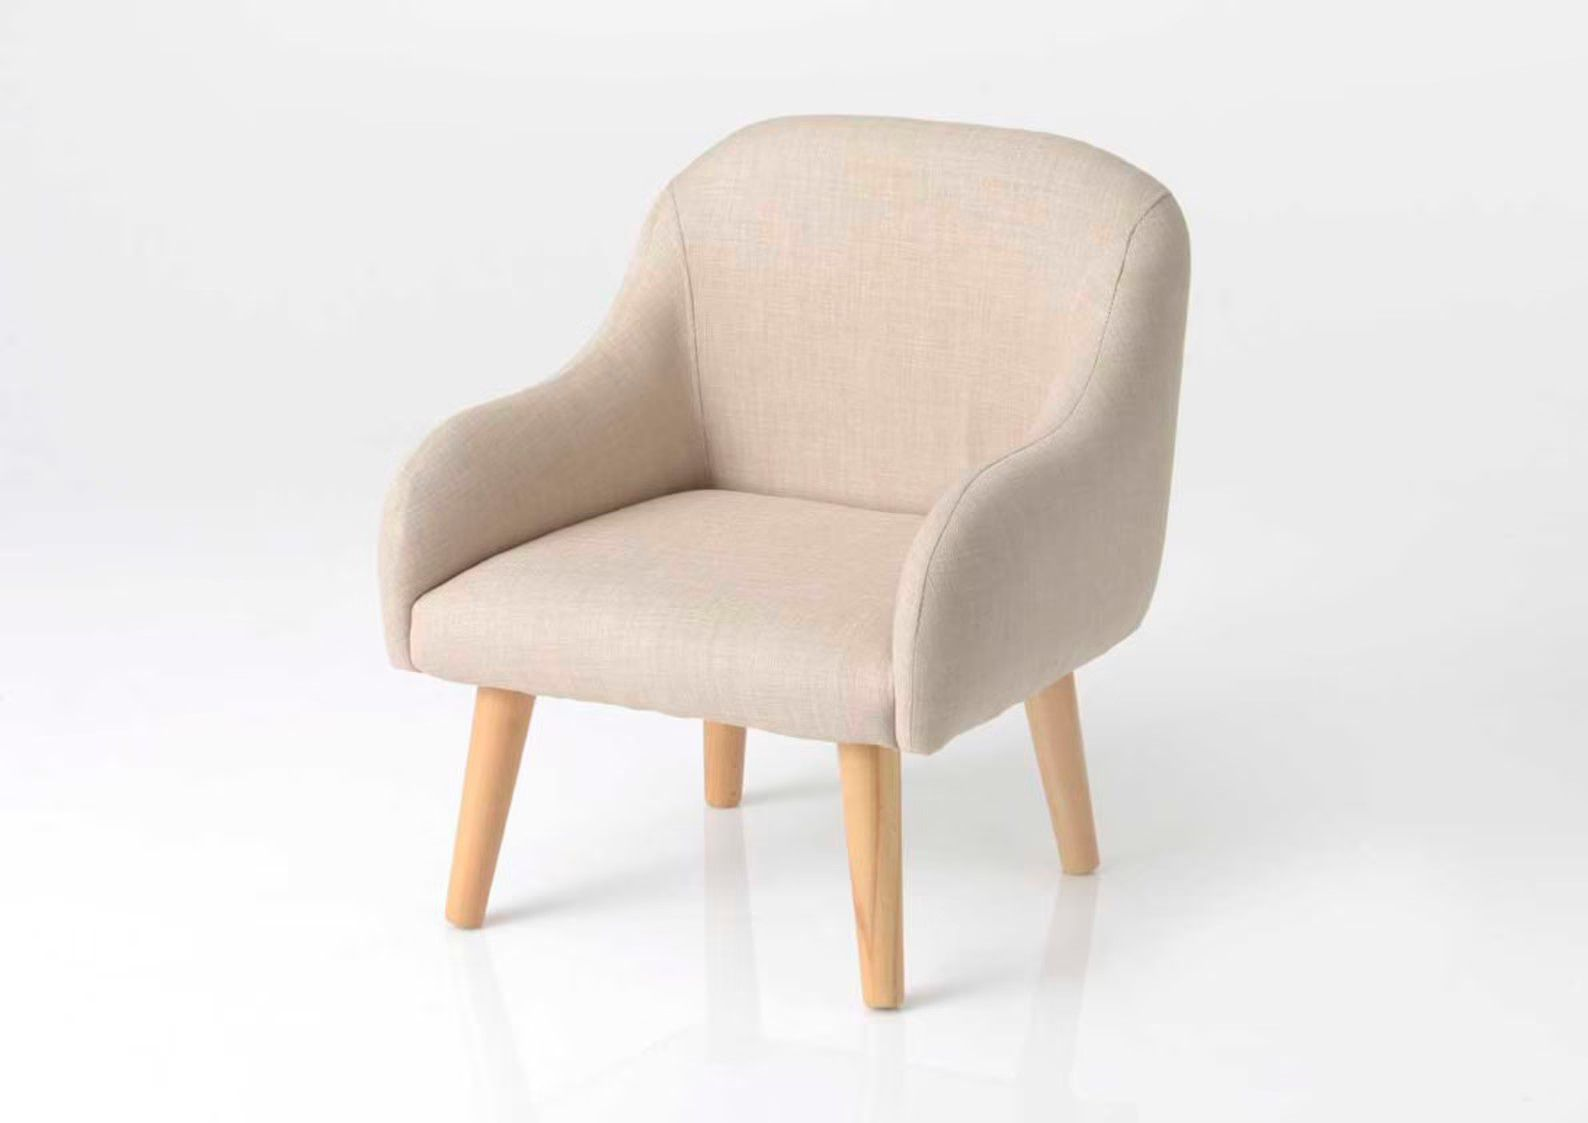 beige chair with light wooden legs